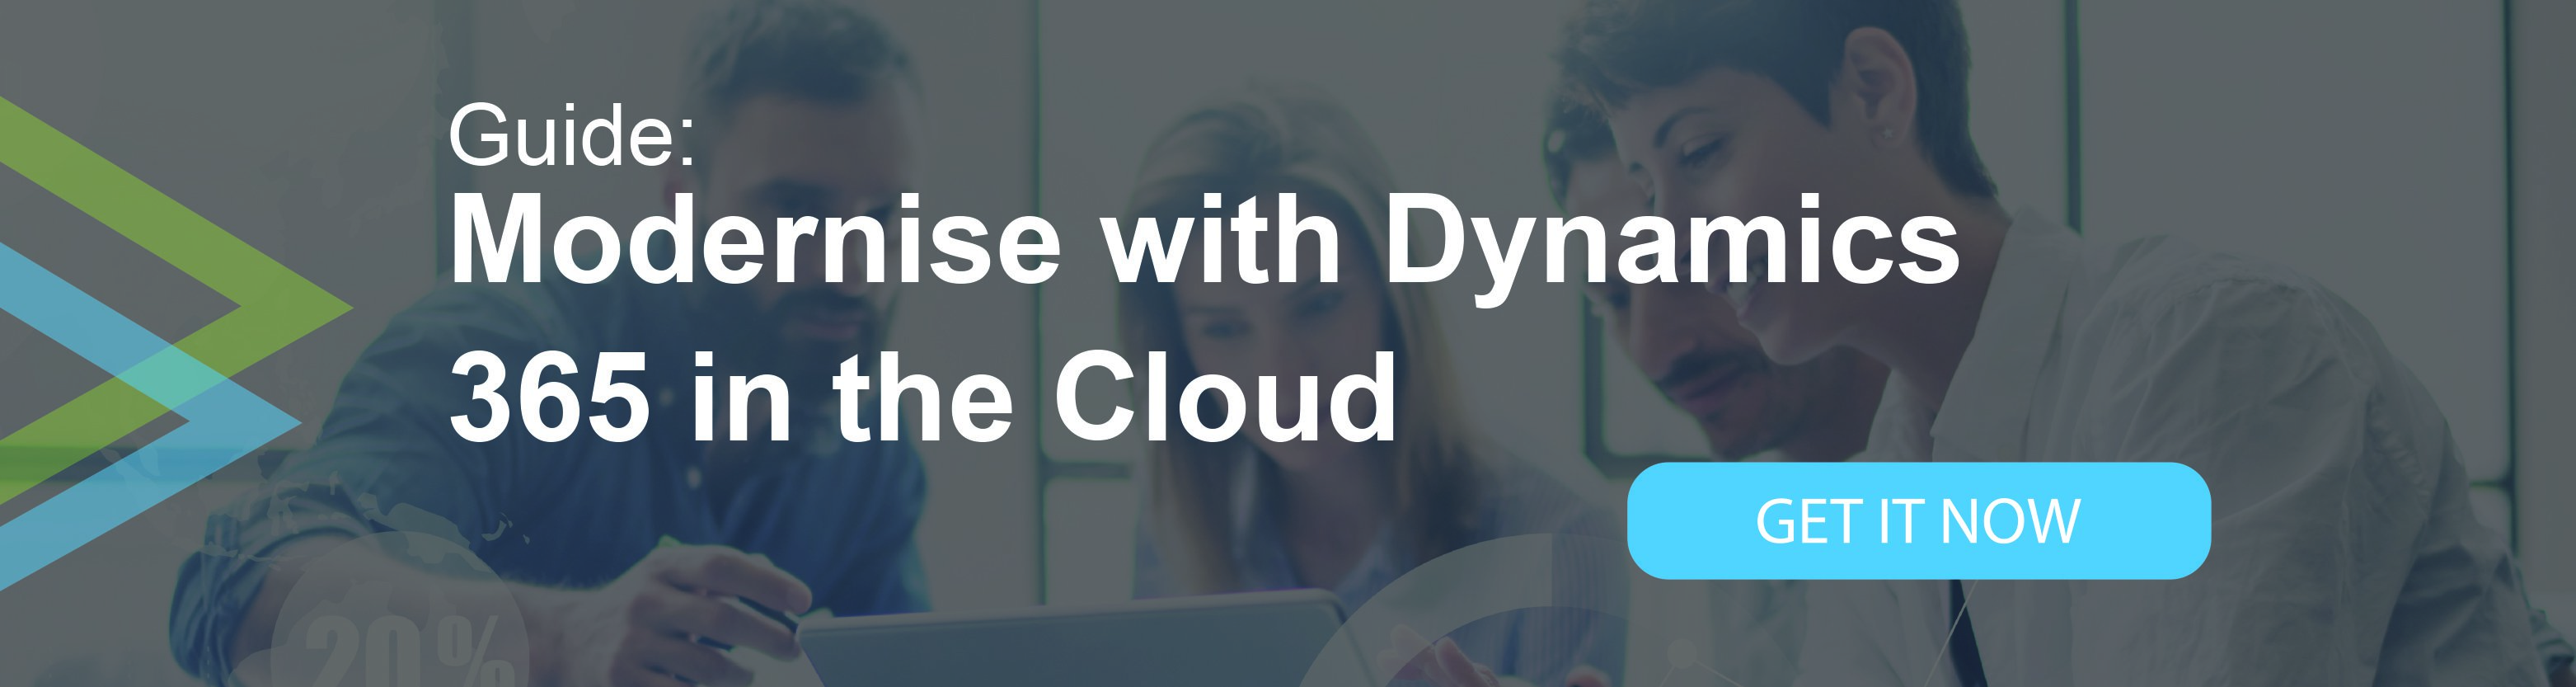 Modernise with Dynamics 365 in the cloud